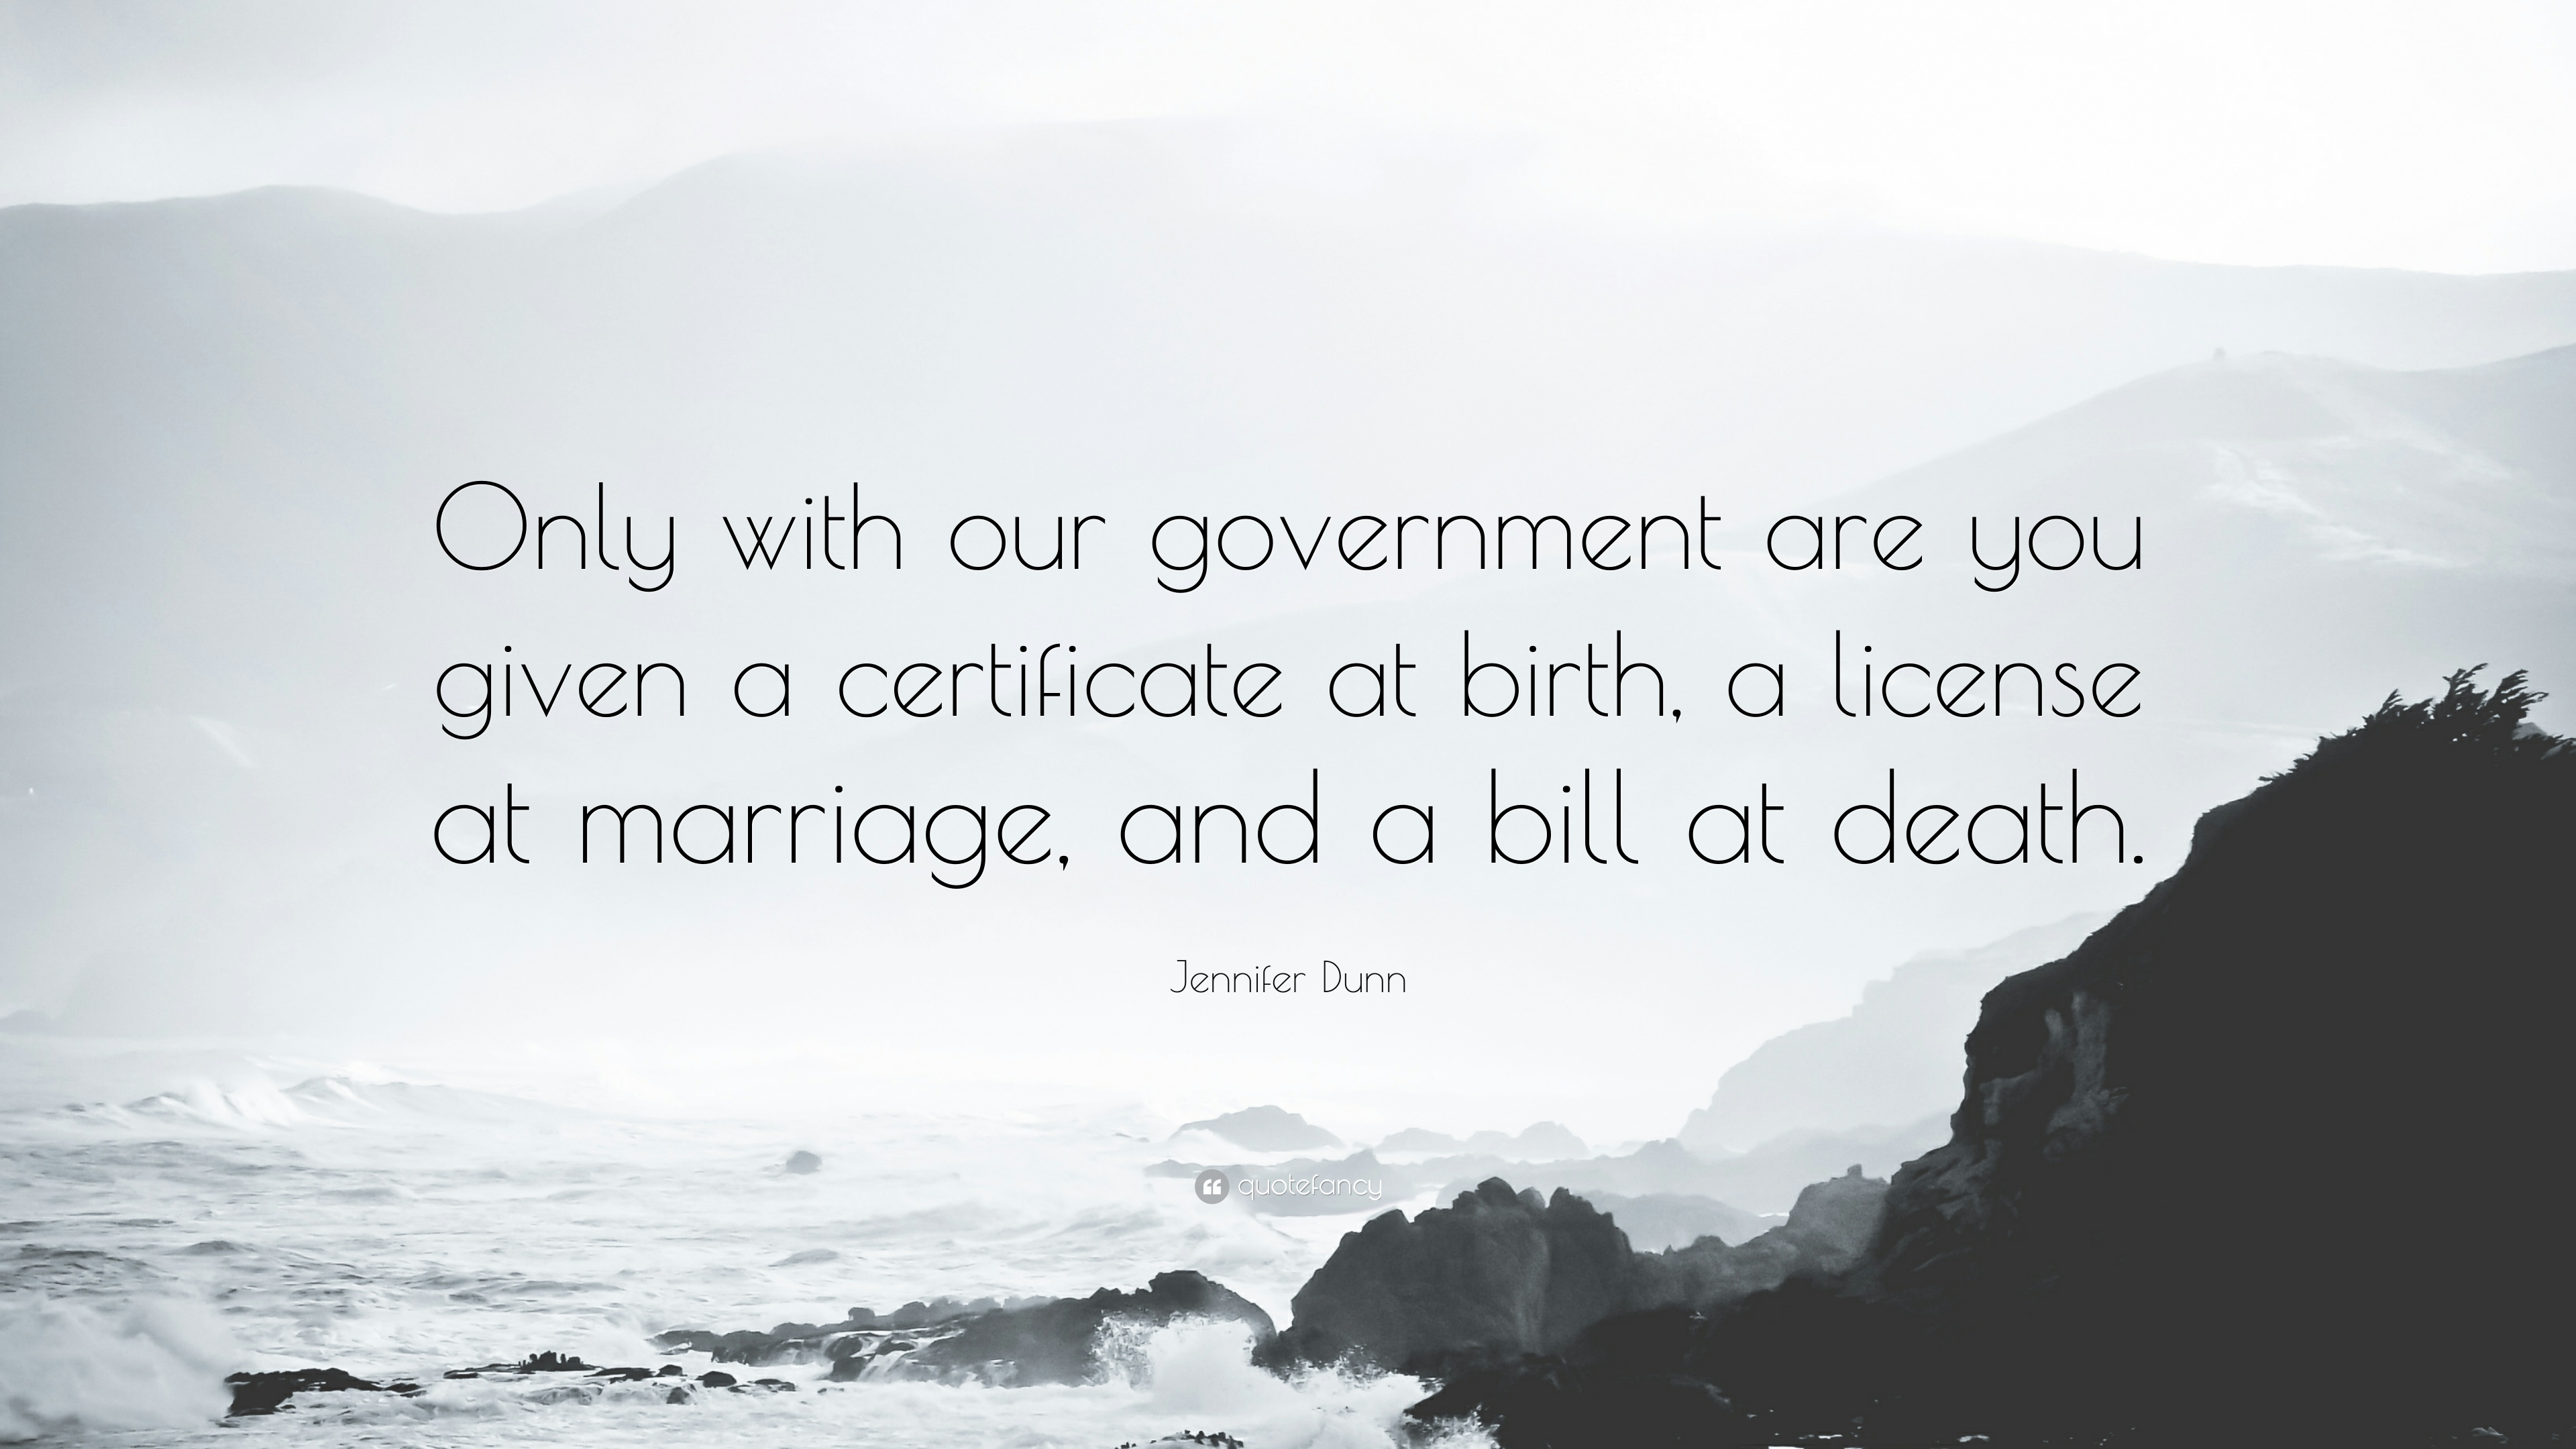 jennifer dunn quote only with our government are you given a